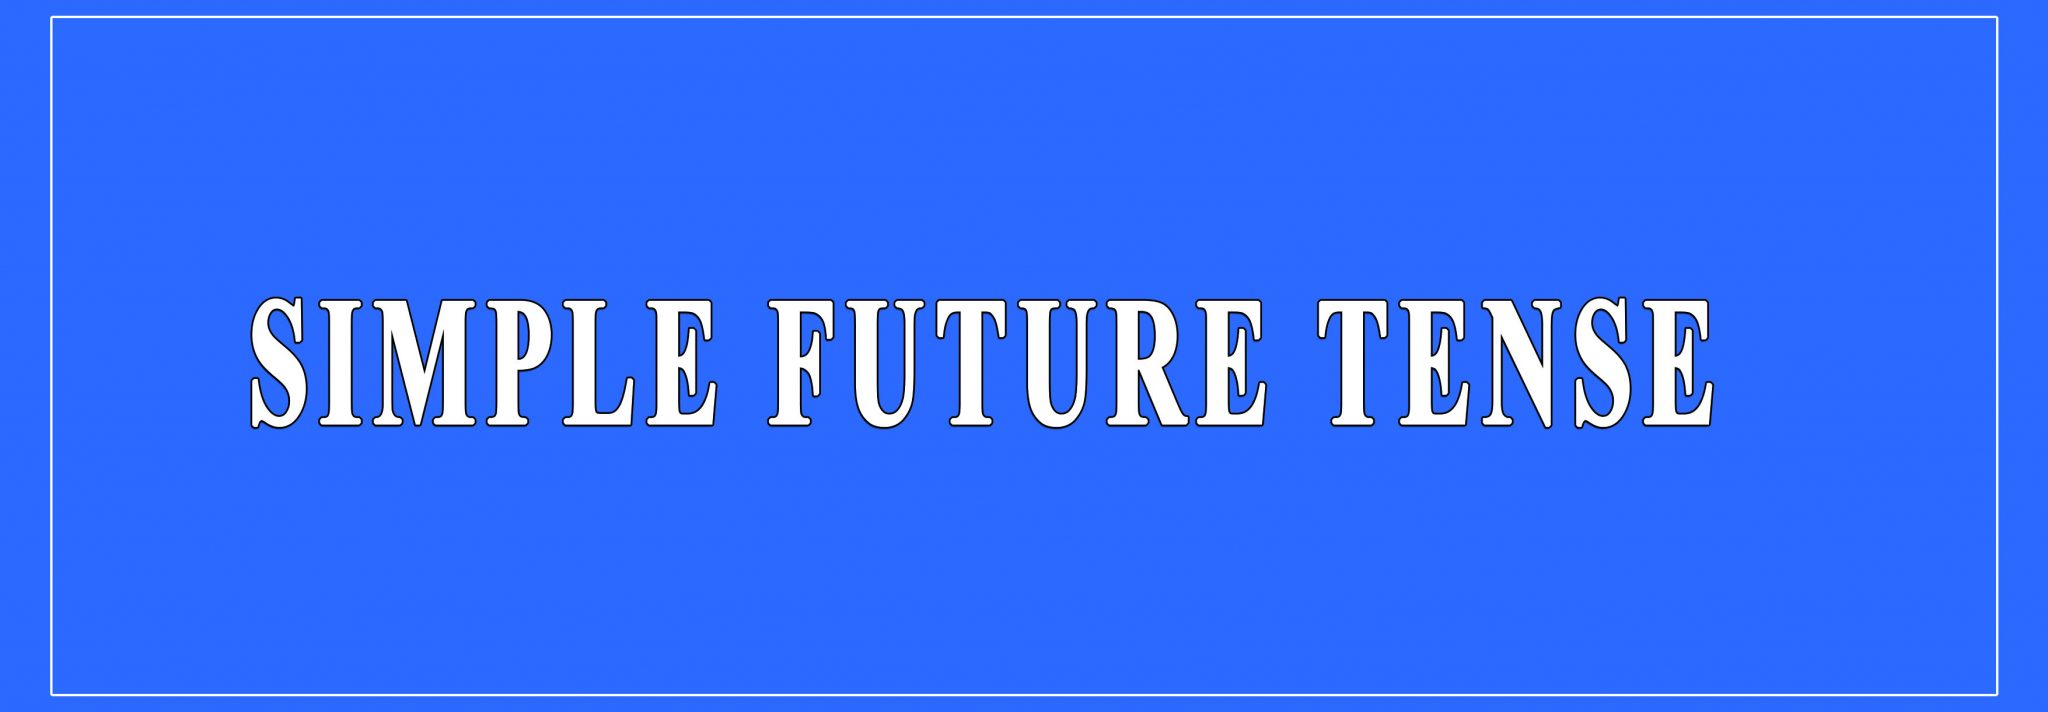 100 simple future tense 100 words of past present future tensepdf free download here name: past, present, and future tense verbs  future and forms a simple future tense sentence .